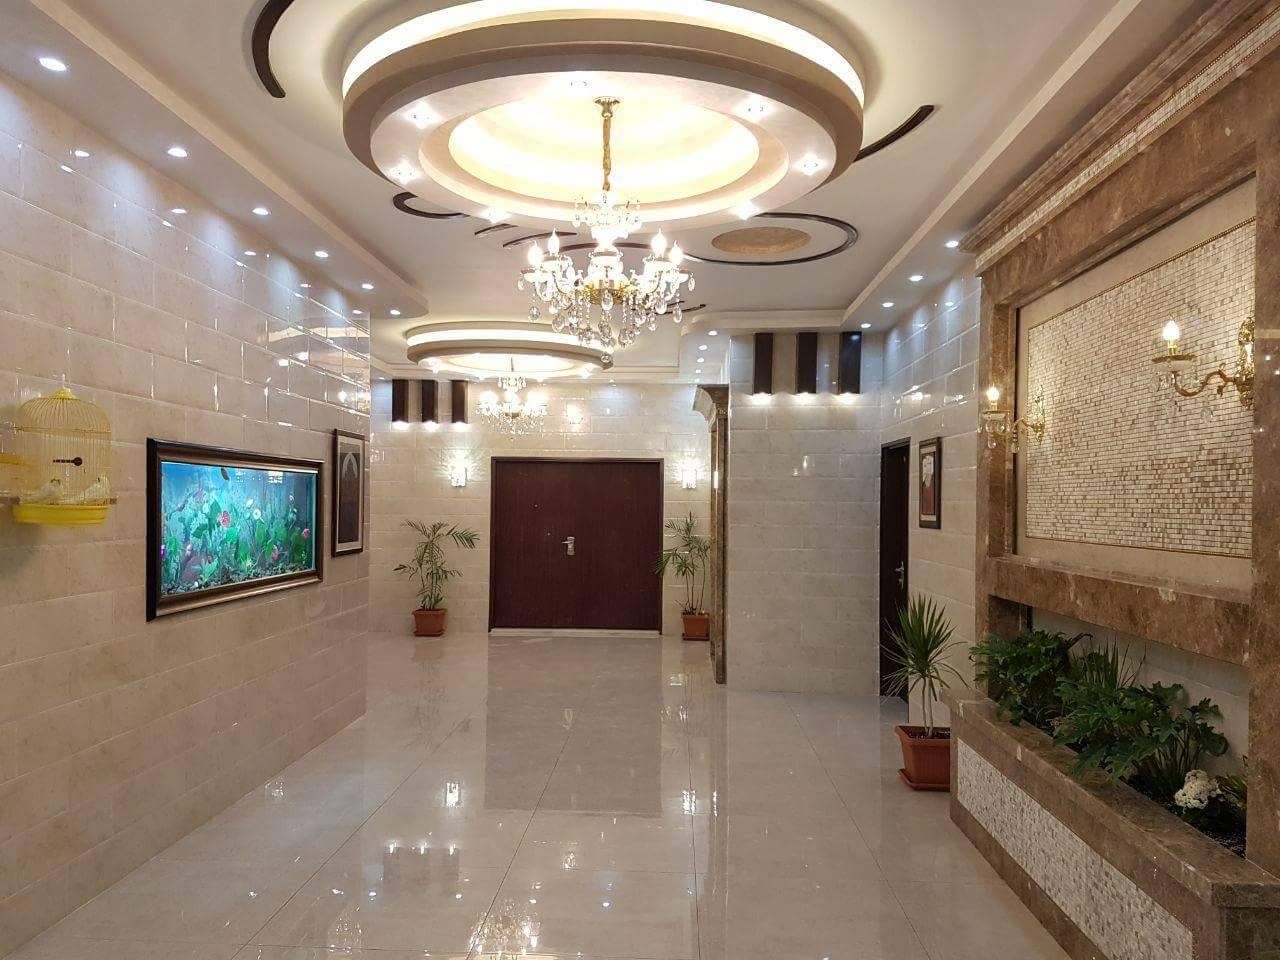 Residential building entrance lobby design decor units for Residential decorating